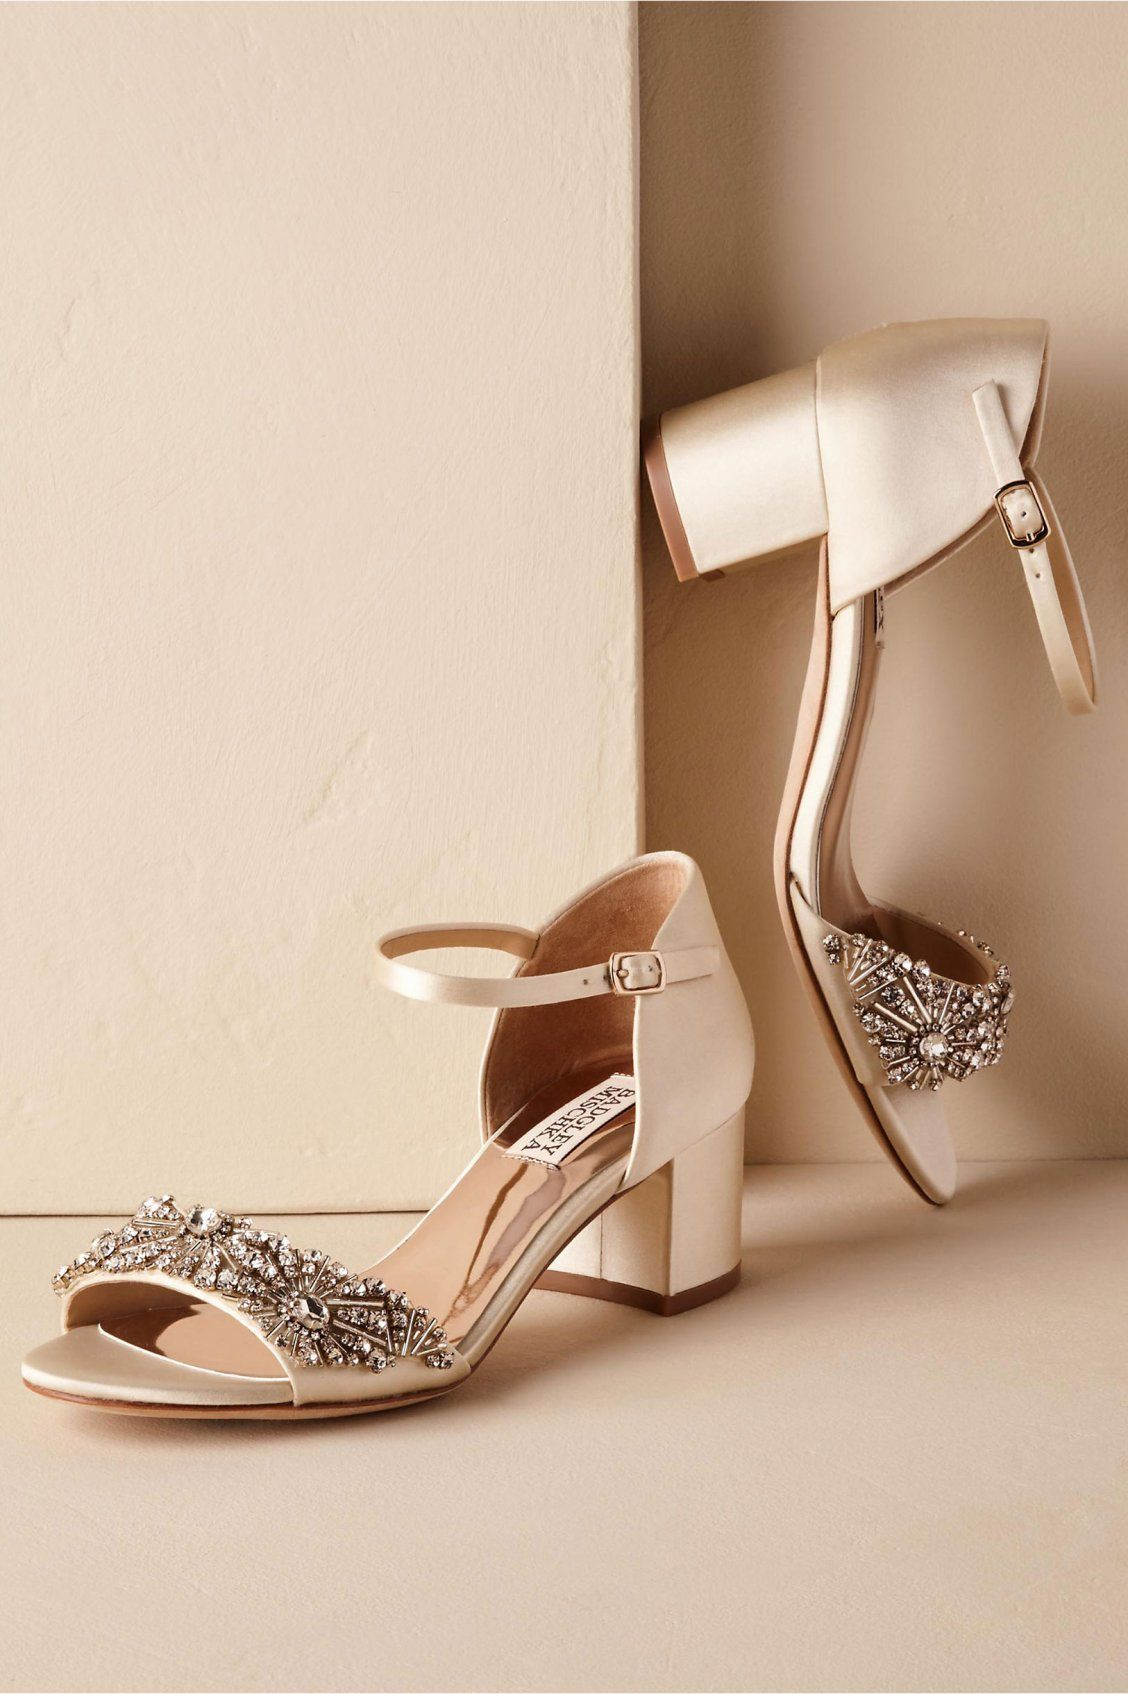 Gilliane Heels from BHLDN Wedding shoes, Bridal shoes